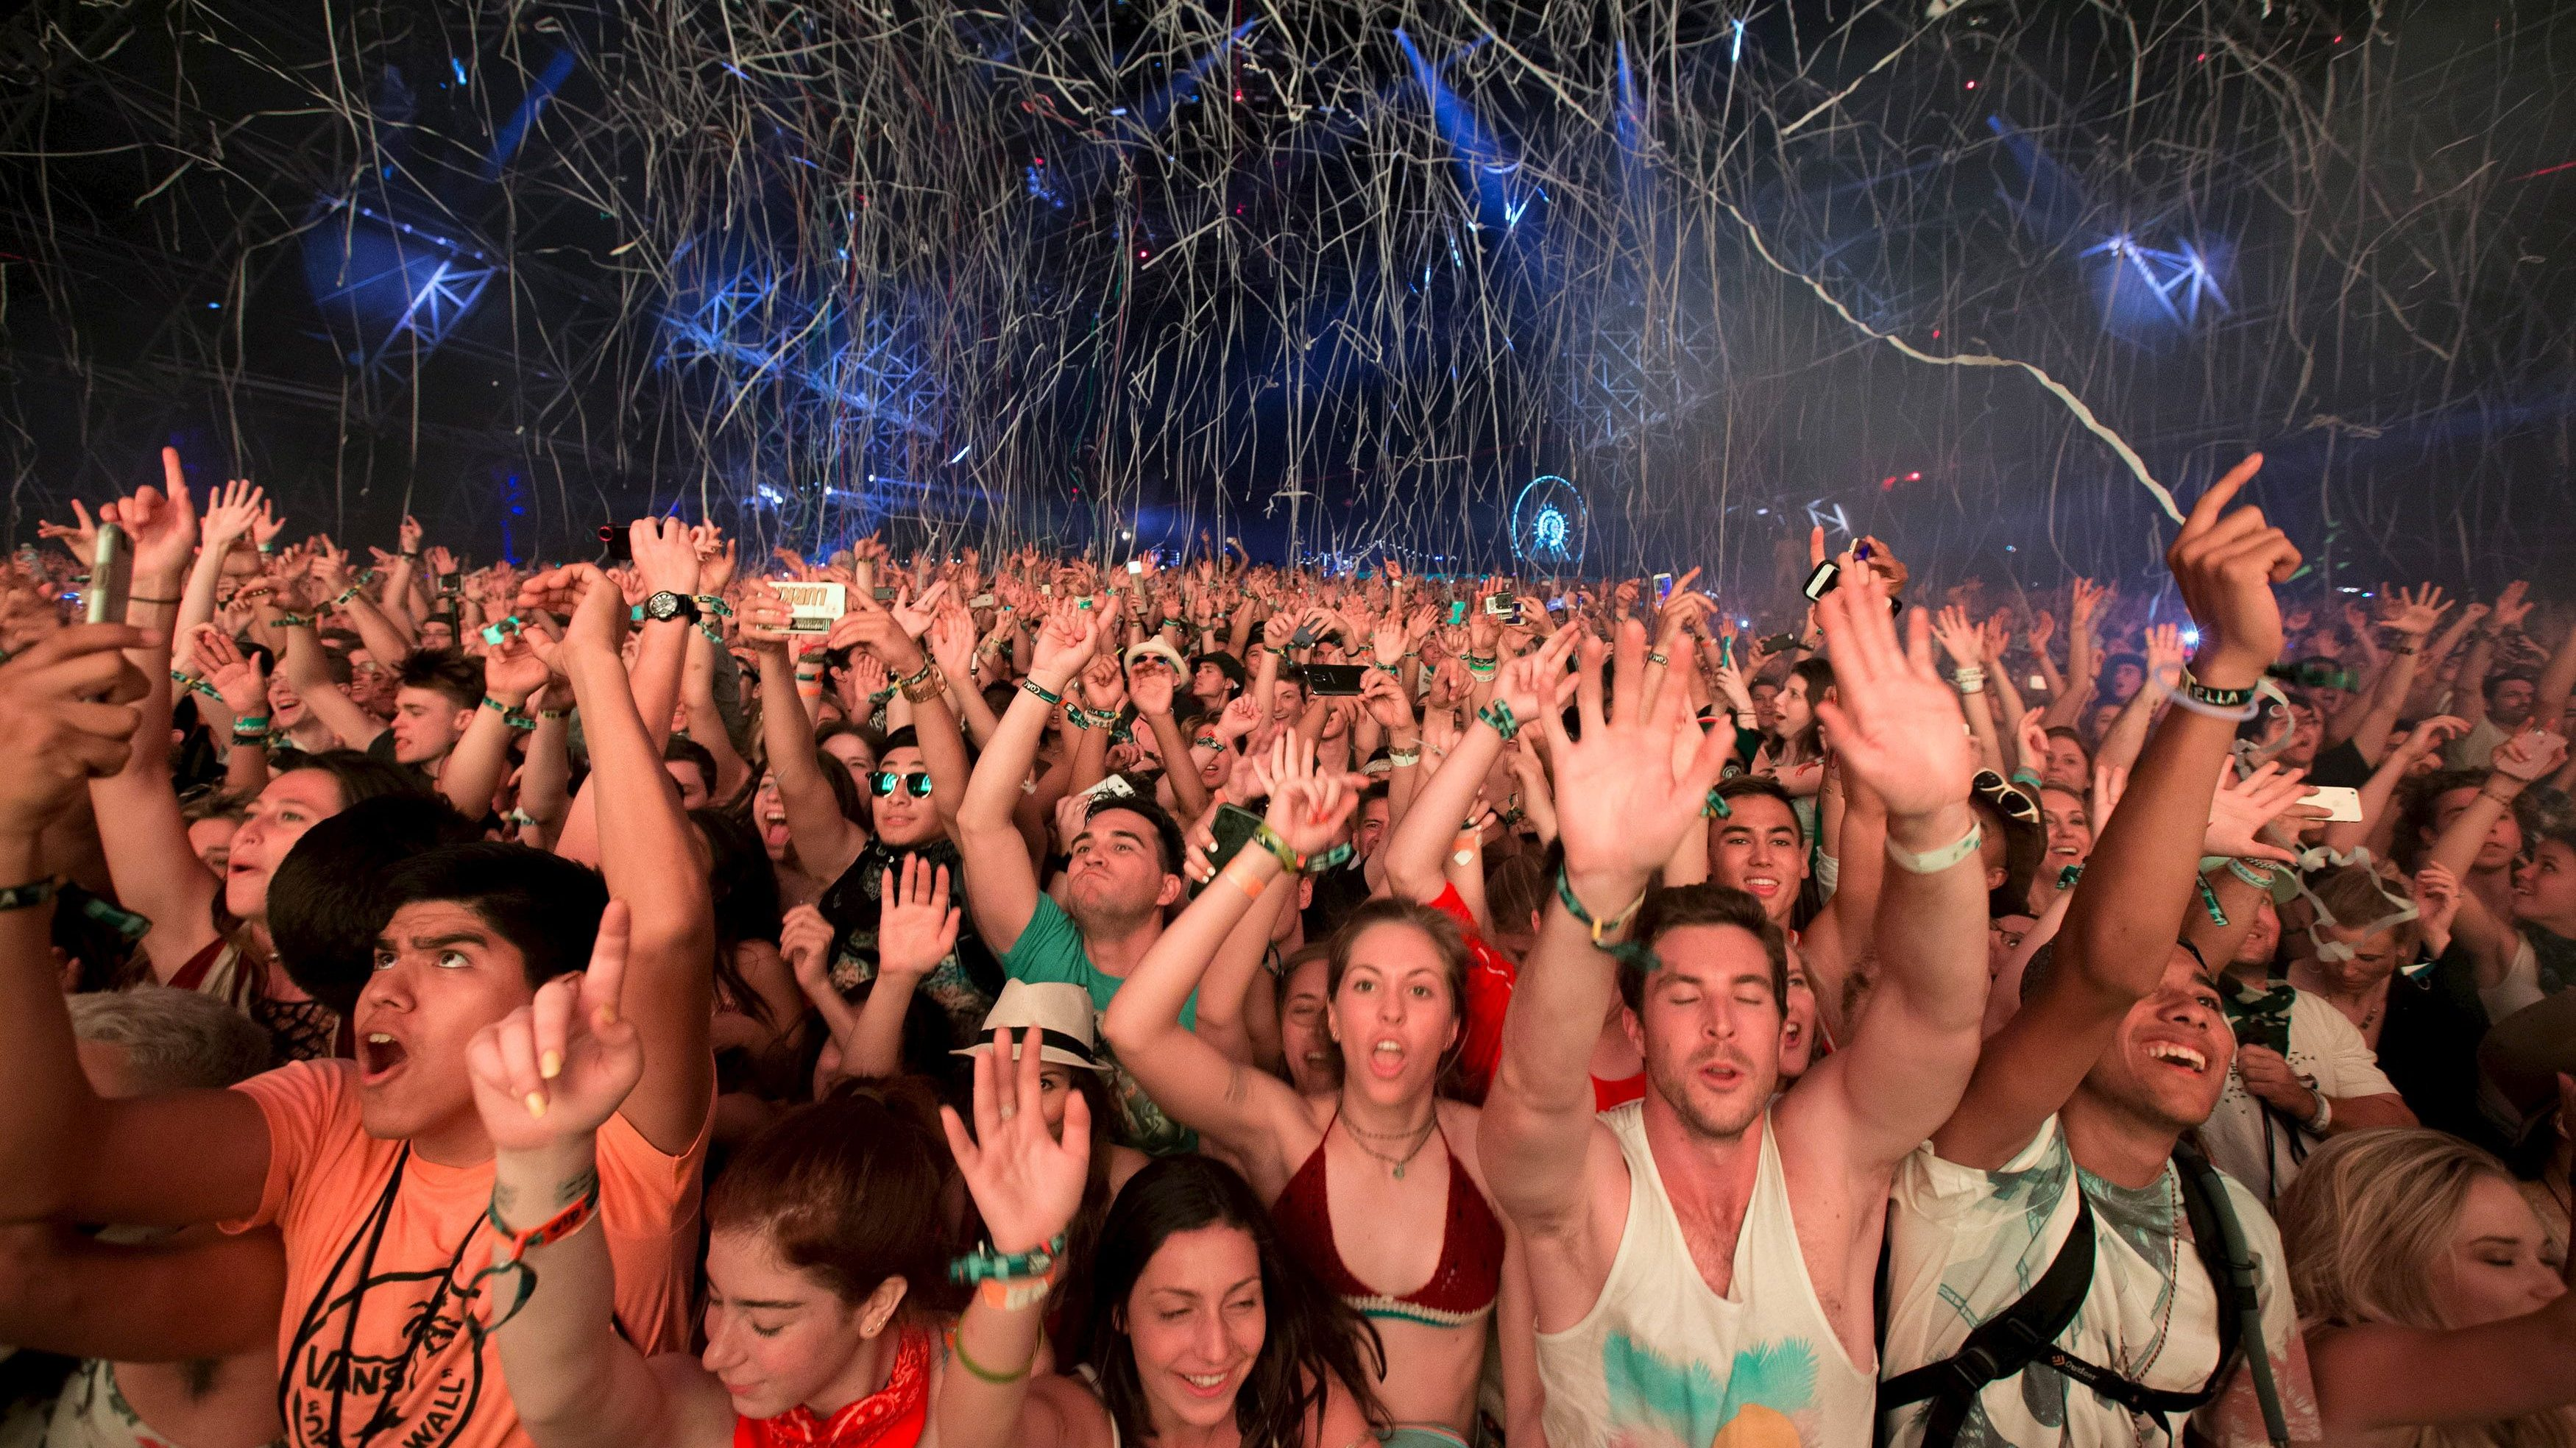 Fans listen to David Guetta at the Coachella Valley Music and Arts Festival in Indio, California April 12, 2015.